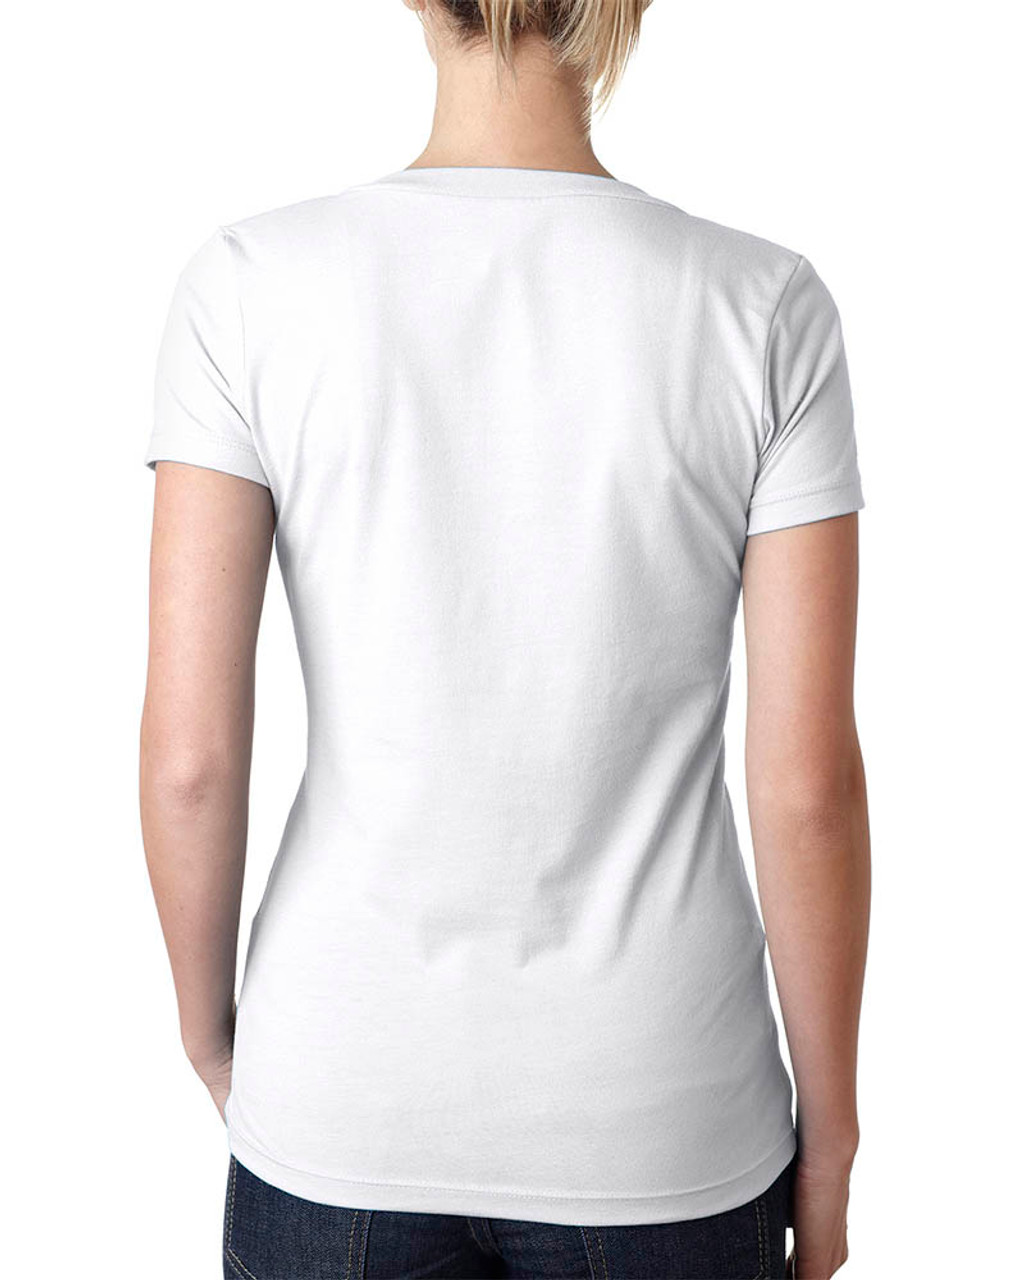 White - 6640 Next Level Ladies' CVC Deep V-Neck T-shirt  | BlankClothing.ca